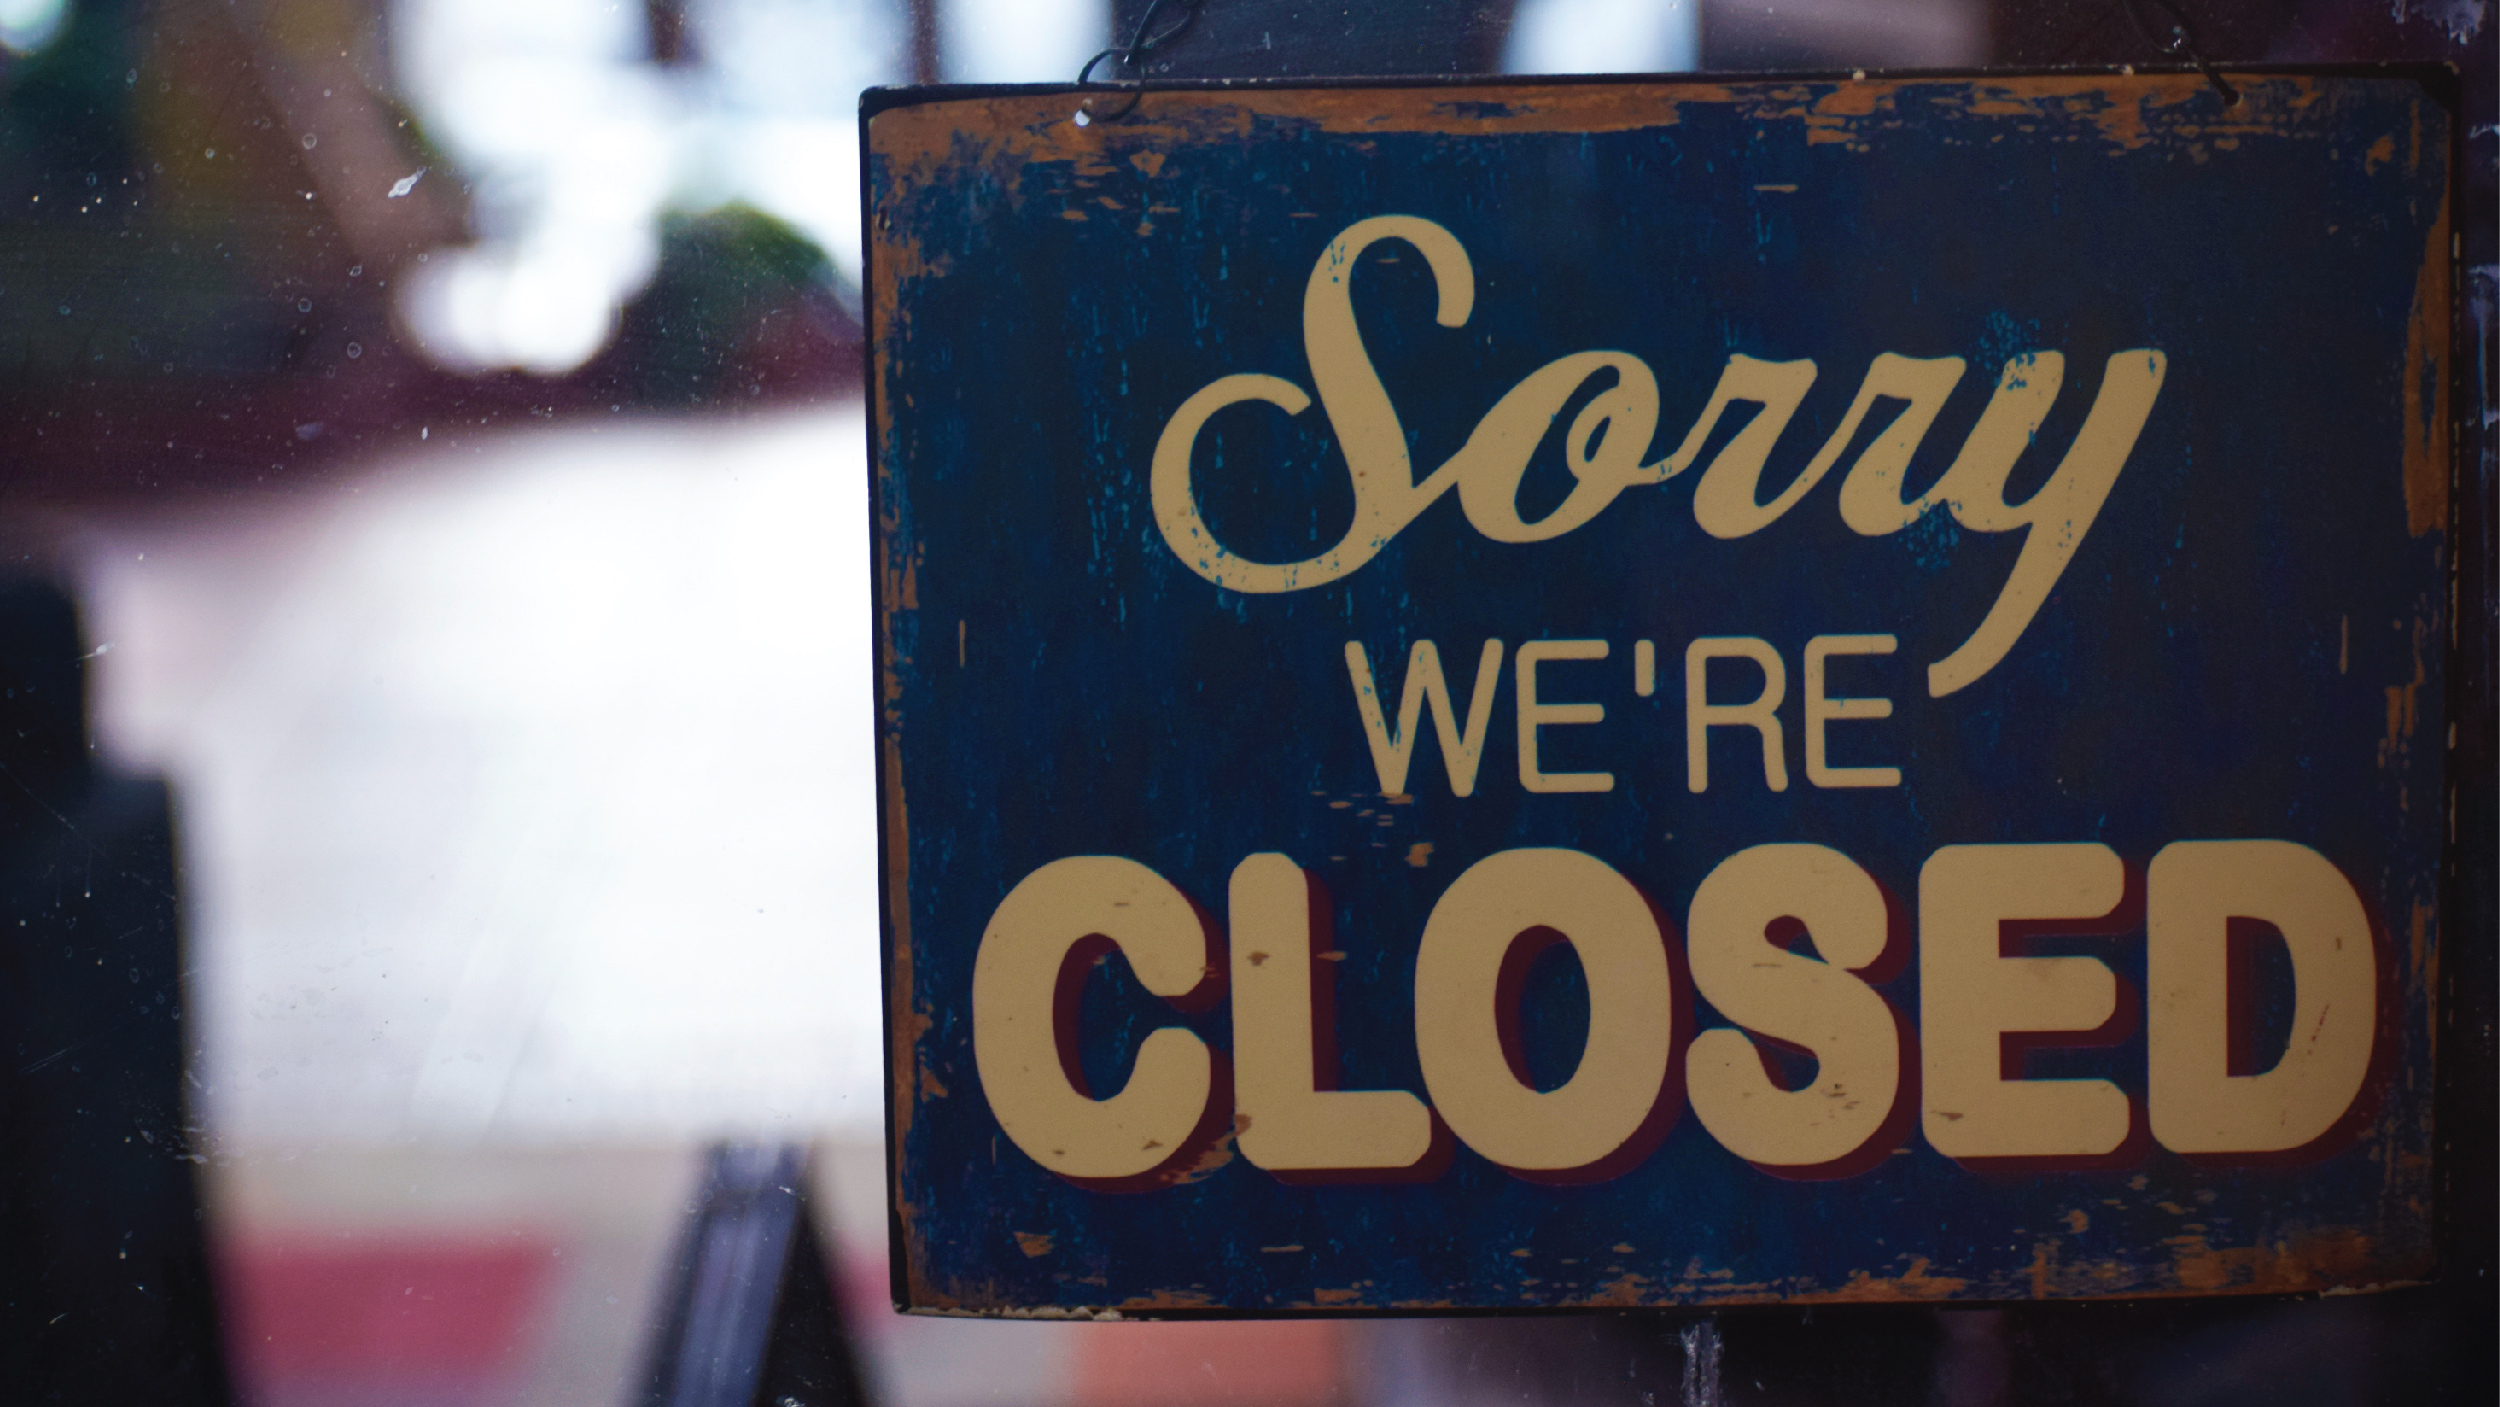 Wewa Films | Sorry, we're closed sign